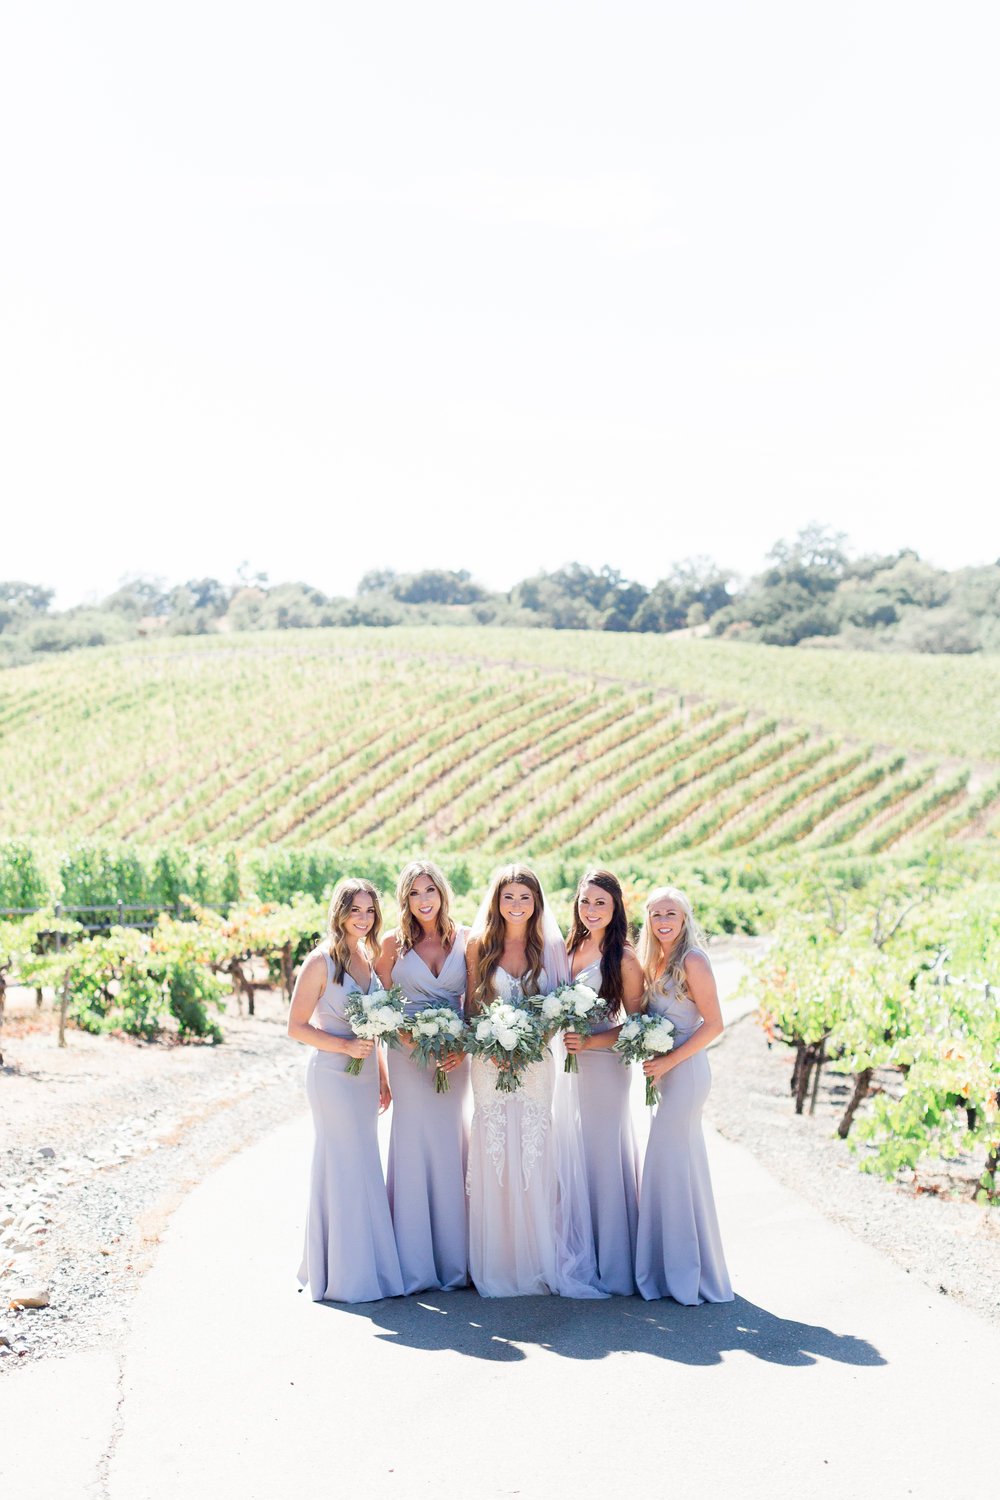 Calegari-Vineyards-Healdsburg-Wedding-Photographer (112 of 262).jpg